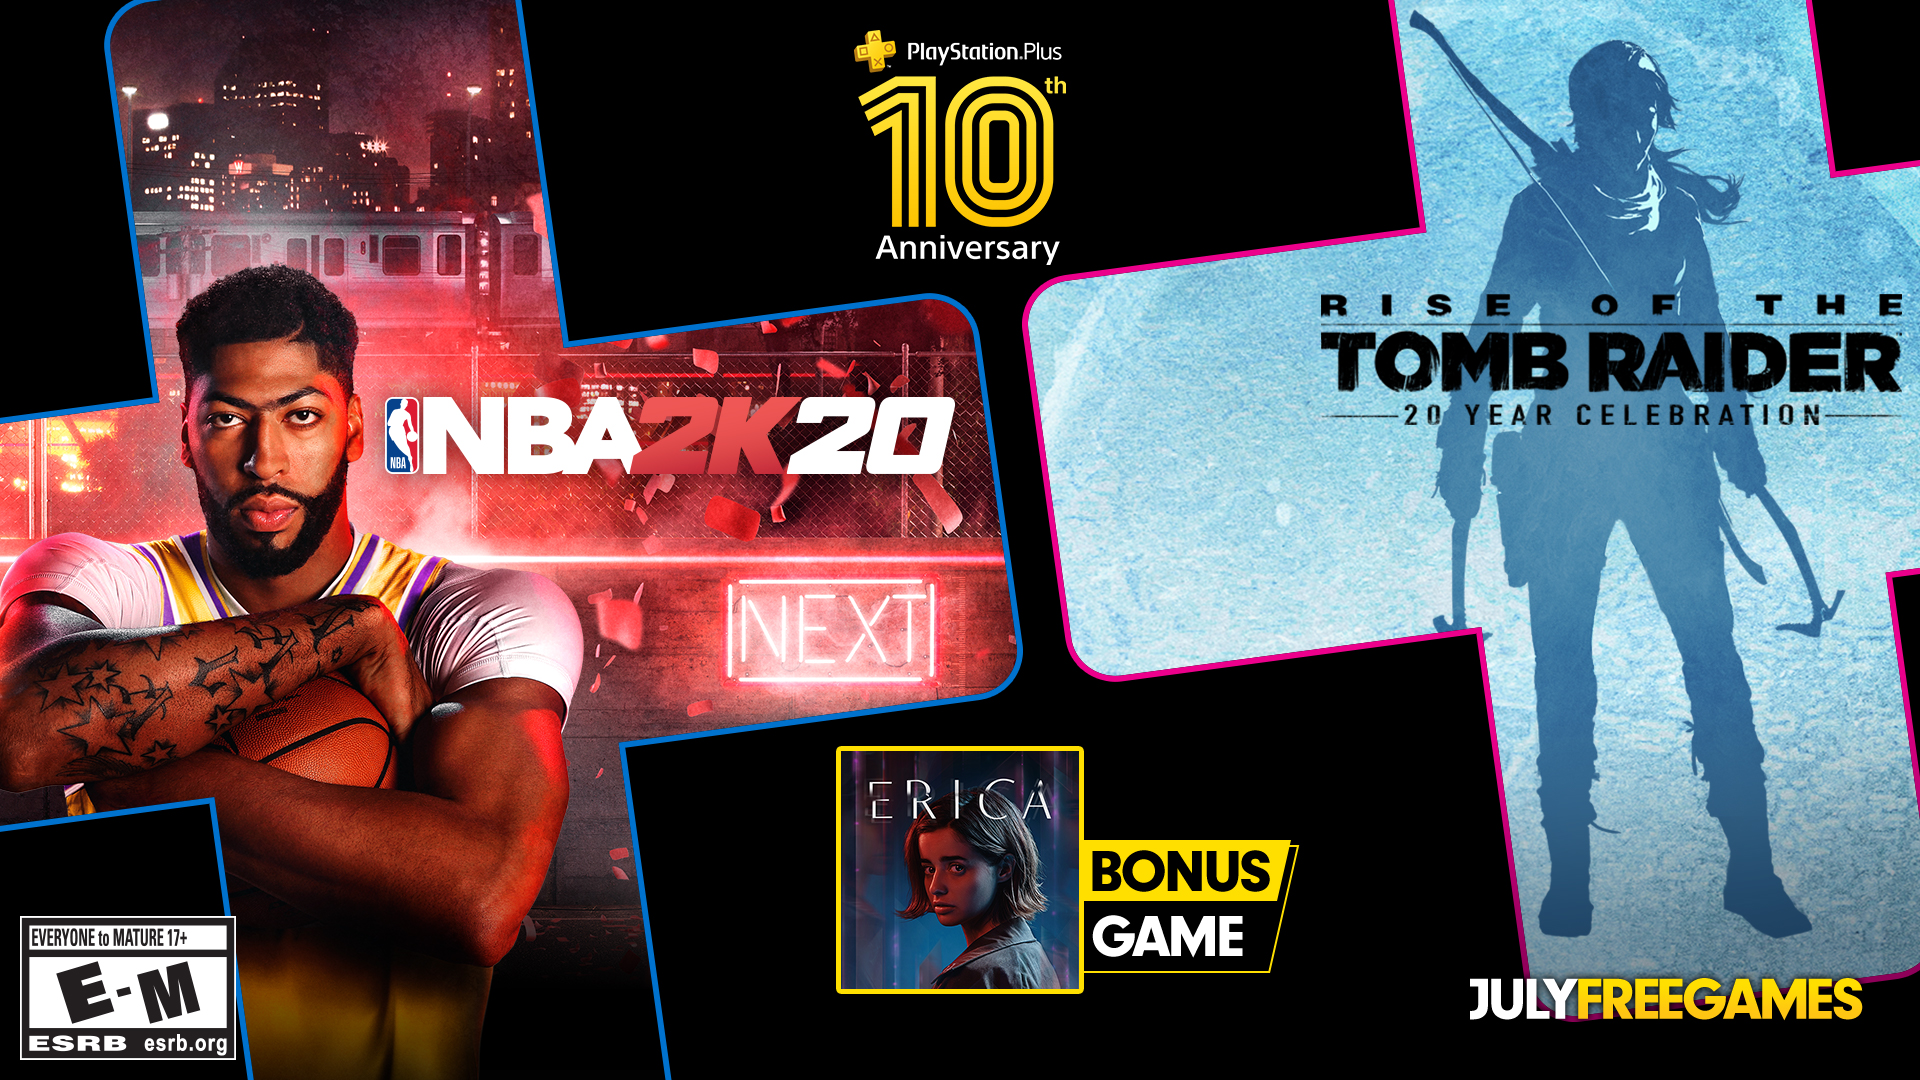 PS Plus Free Games July 2020